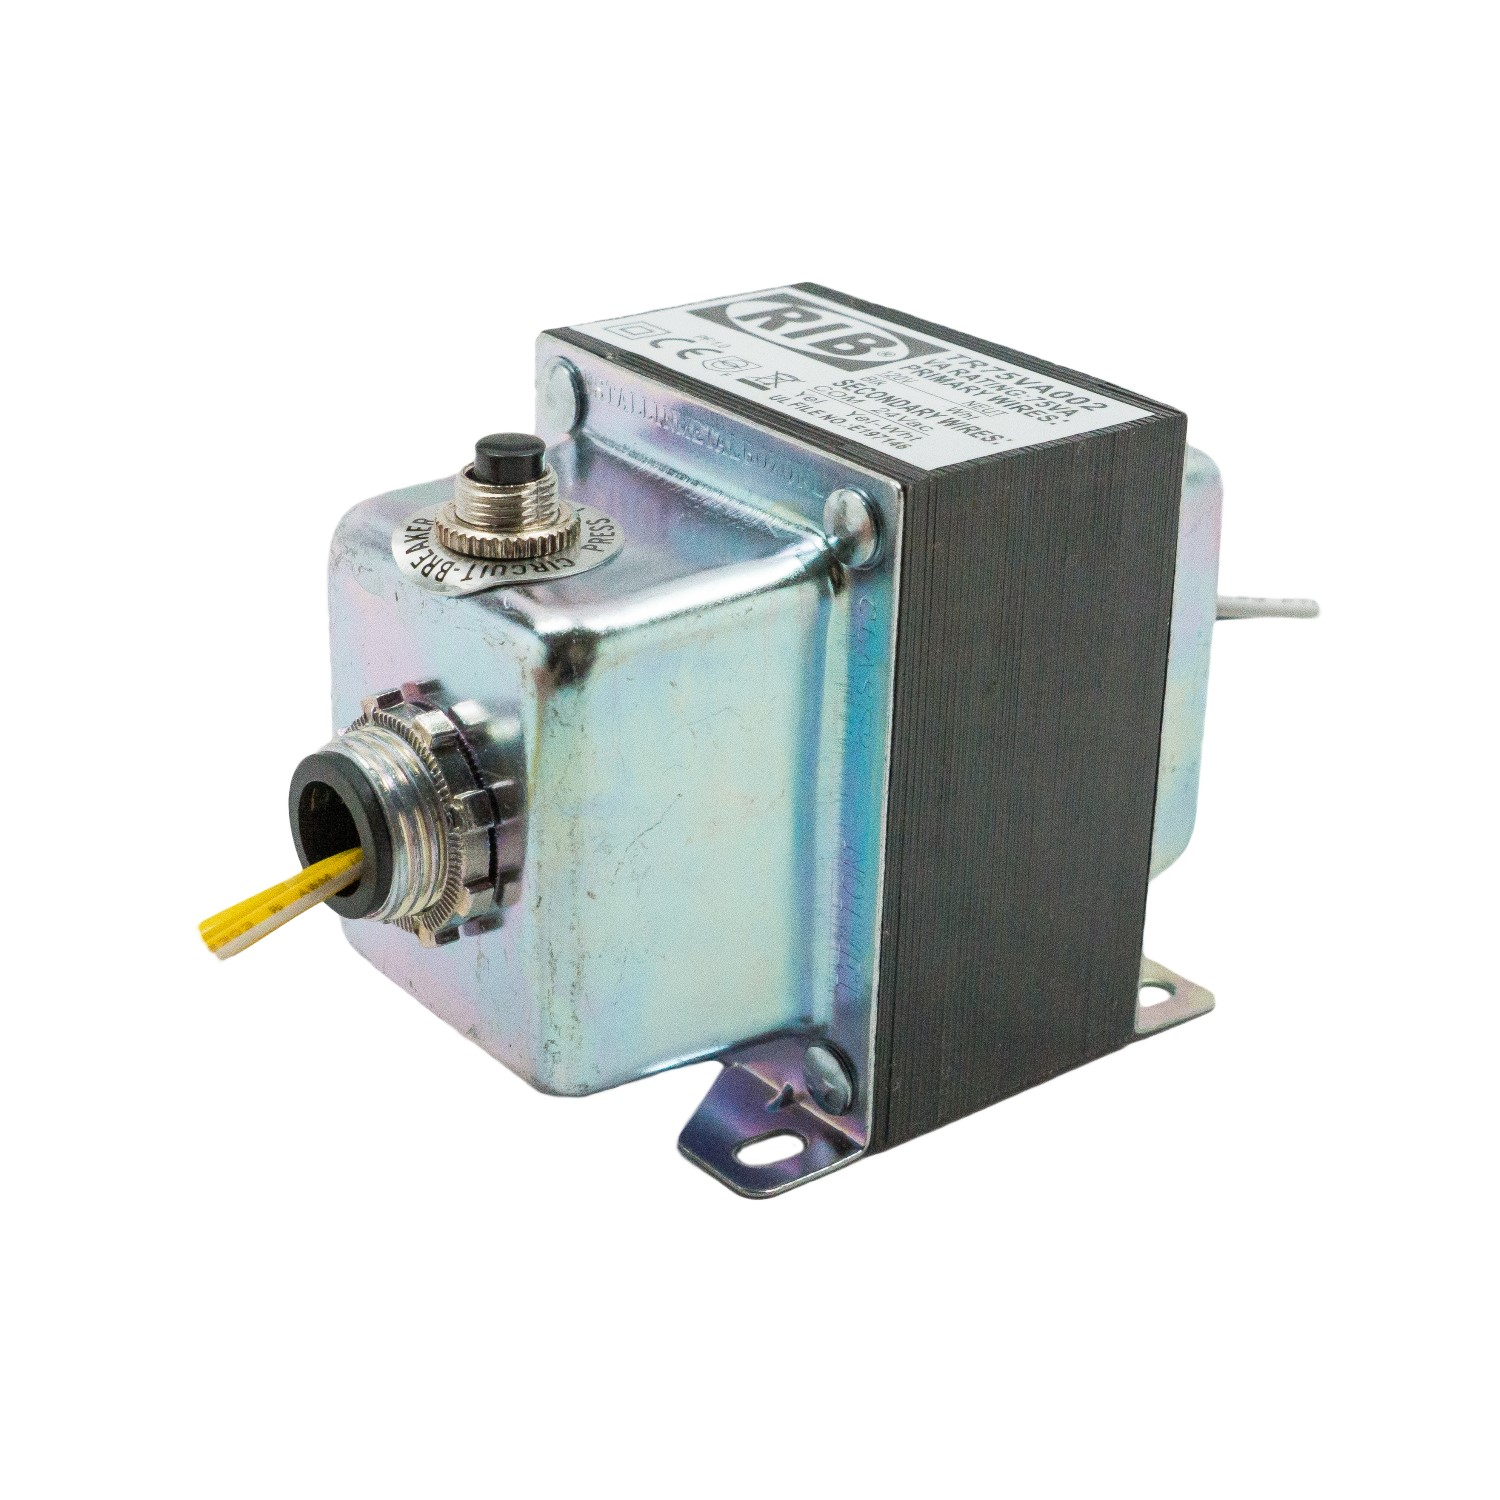 TR75VA002 - Functional Devices 75VA Transformer 120-24V, Circuit Breaker, Foot/Dual Threaded Hub